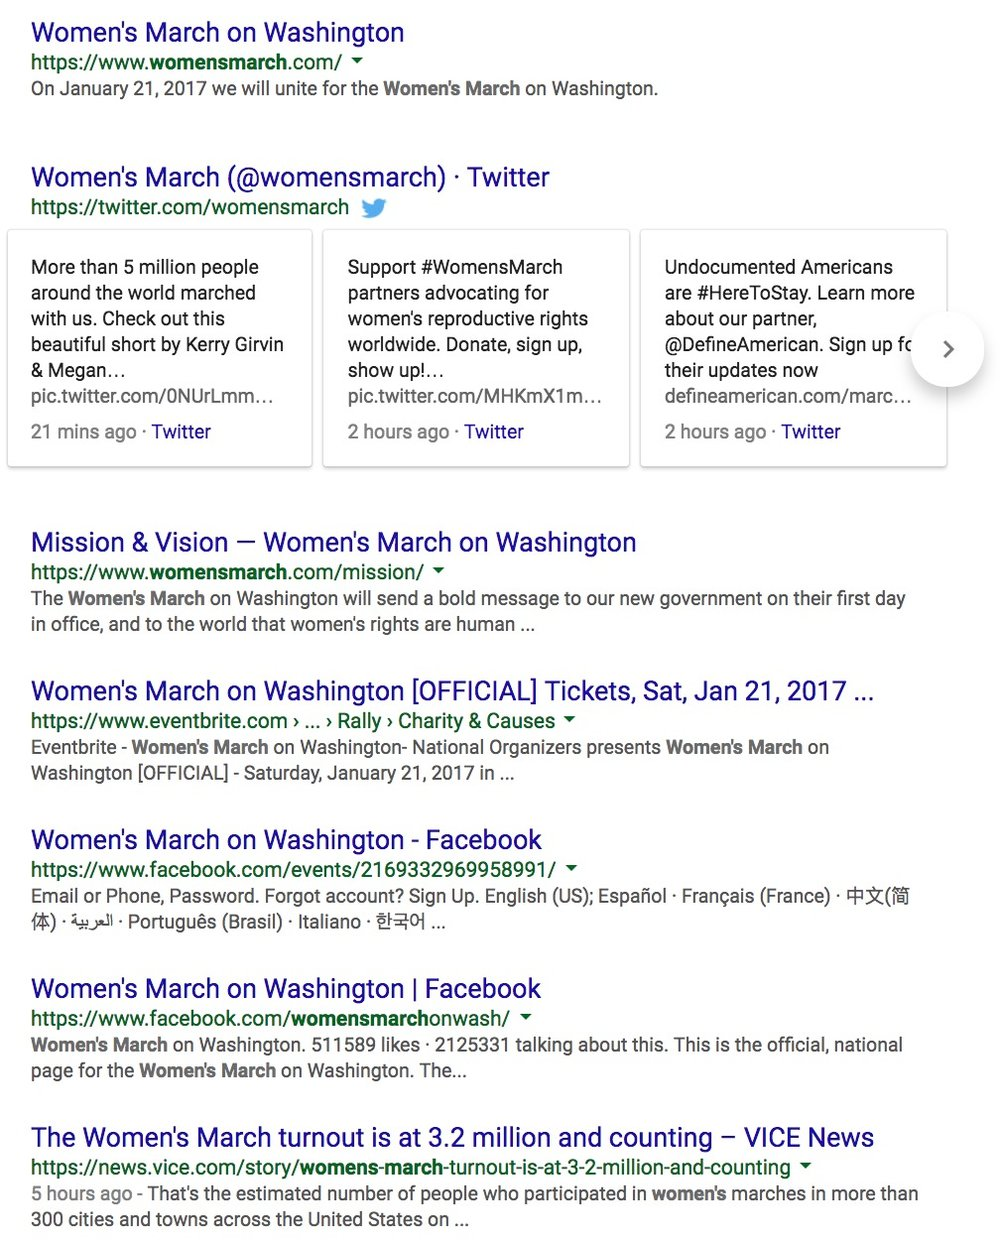 Women's March dominated SERPs in a very short amount of time